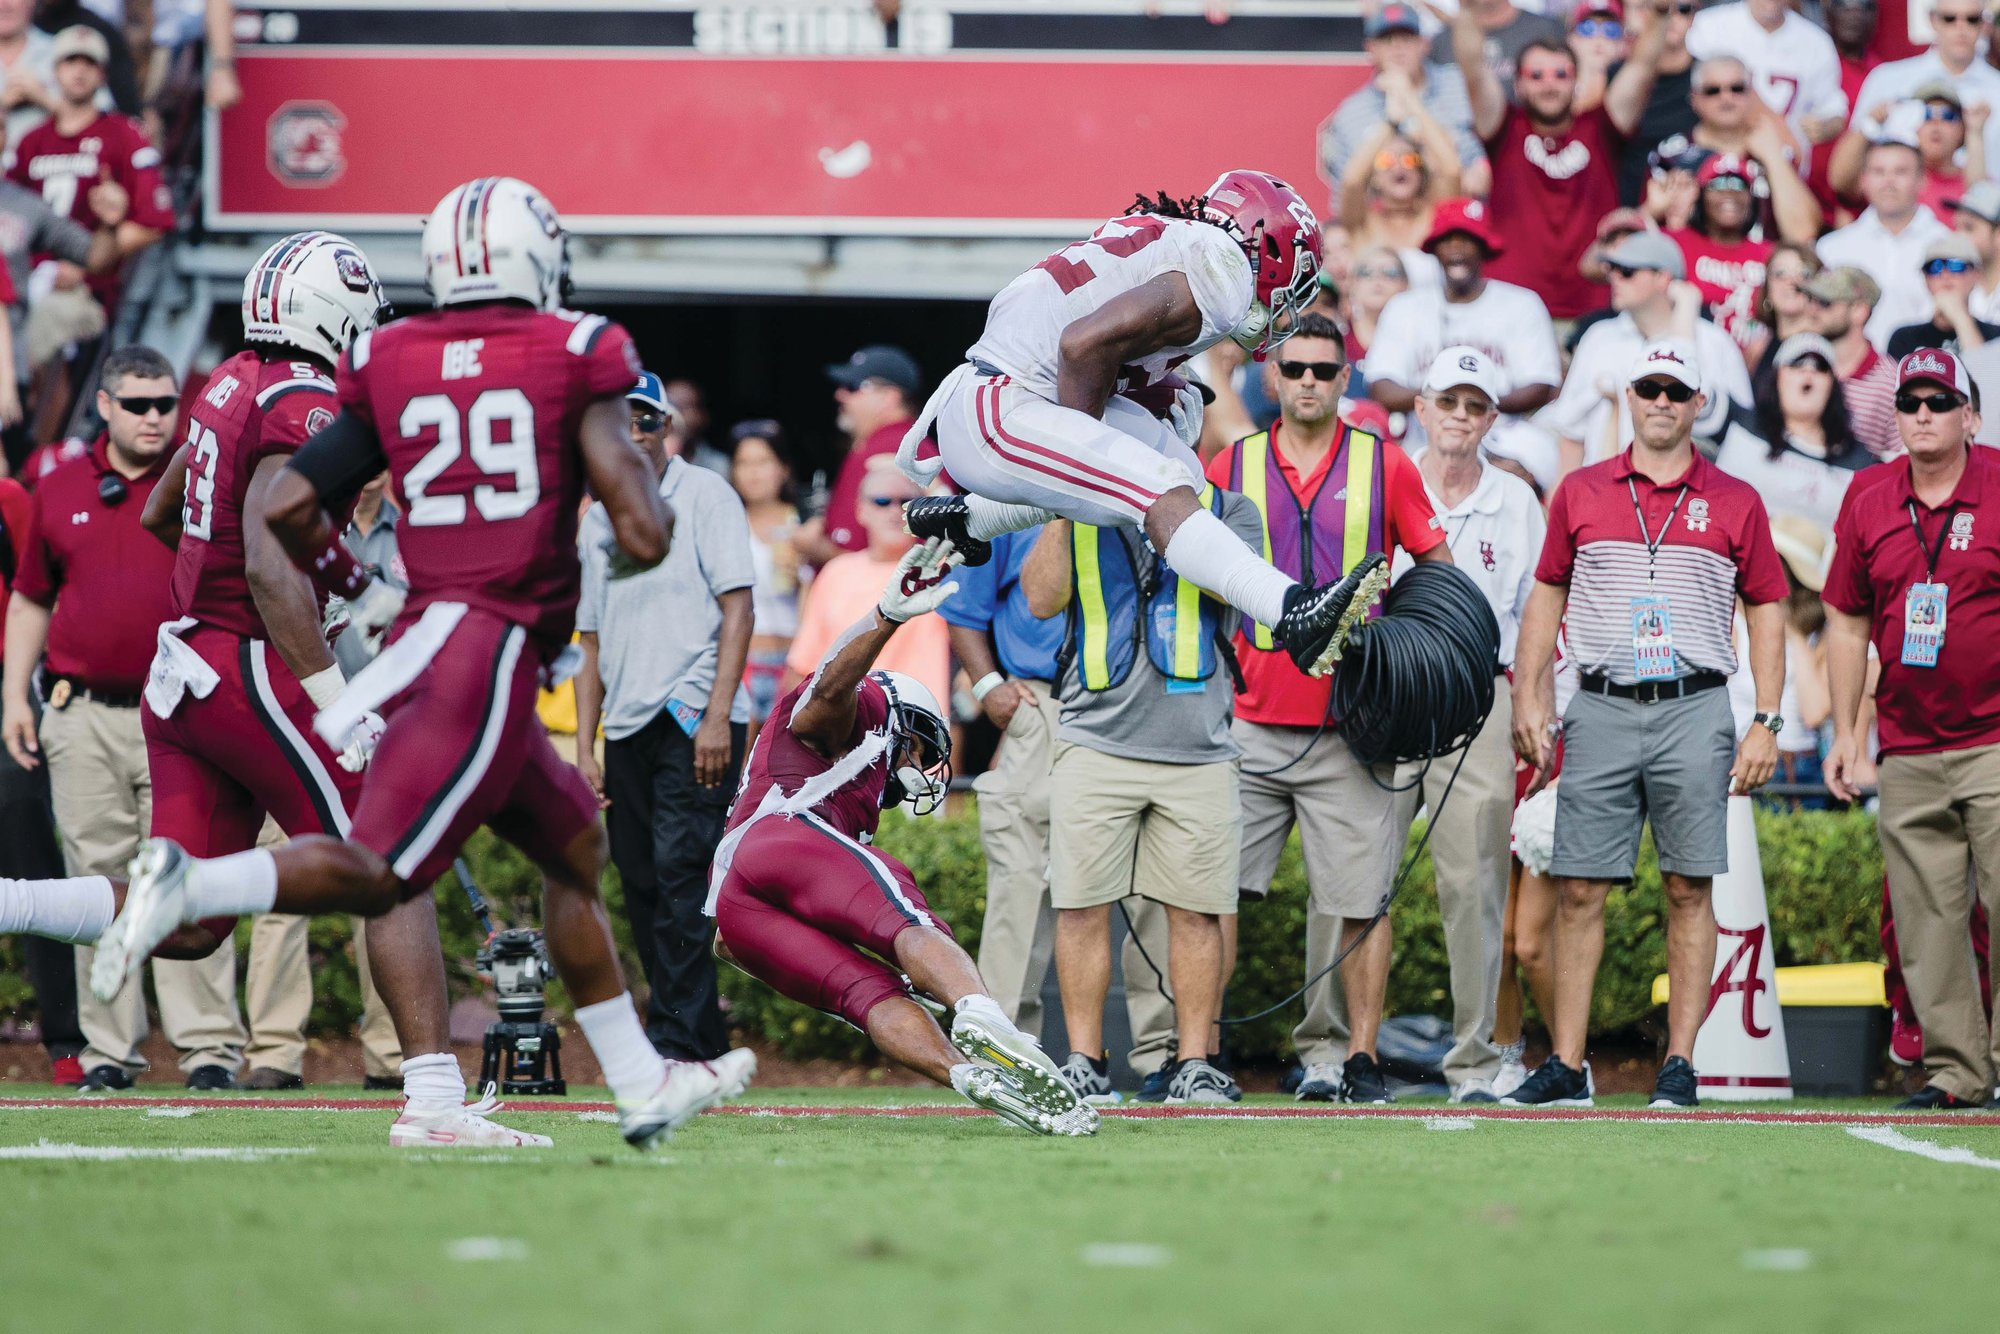 MICAH GREEN / THE SUMTER ITEM  Alabama running back Najee Harris leaps over a South Carolina defender on the way to a 42-yard touchdown pass in the Crimson Tide's 47-23 victory on Saturday at Williams-Brice Stadium in Columbia.